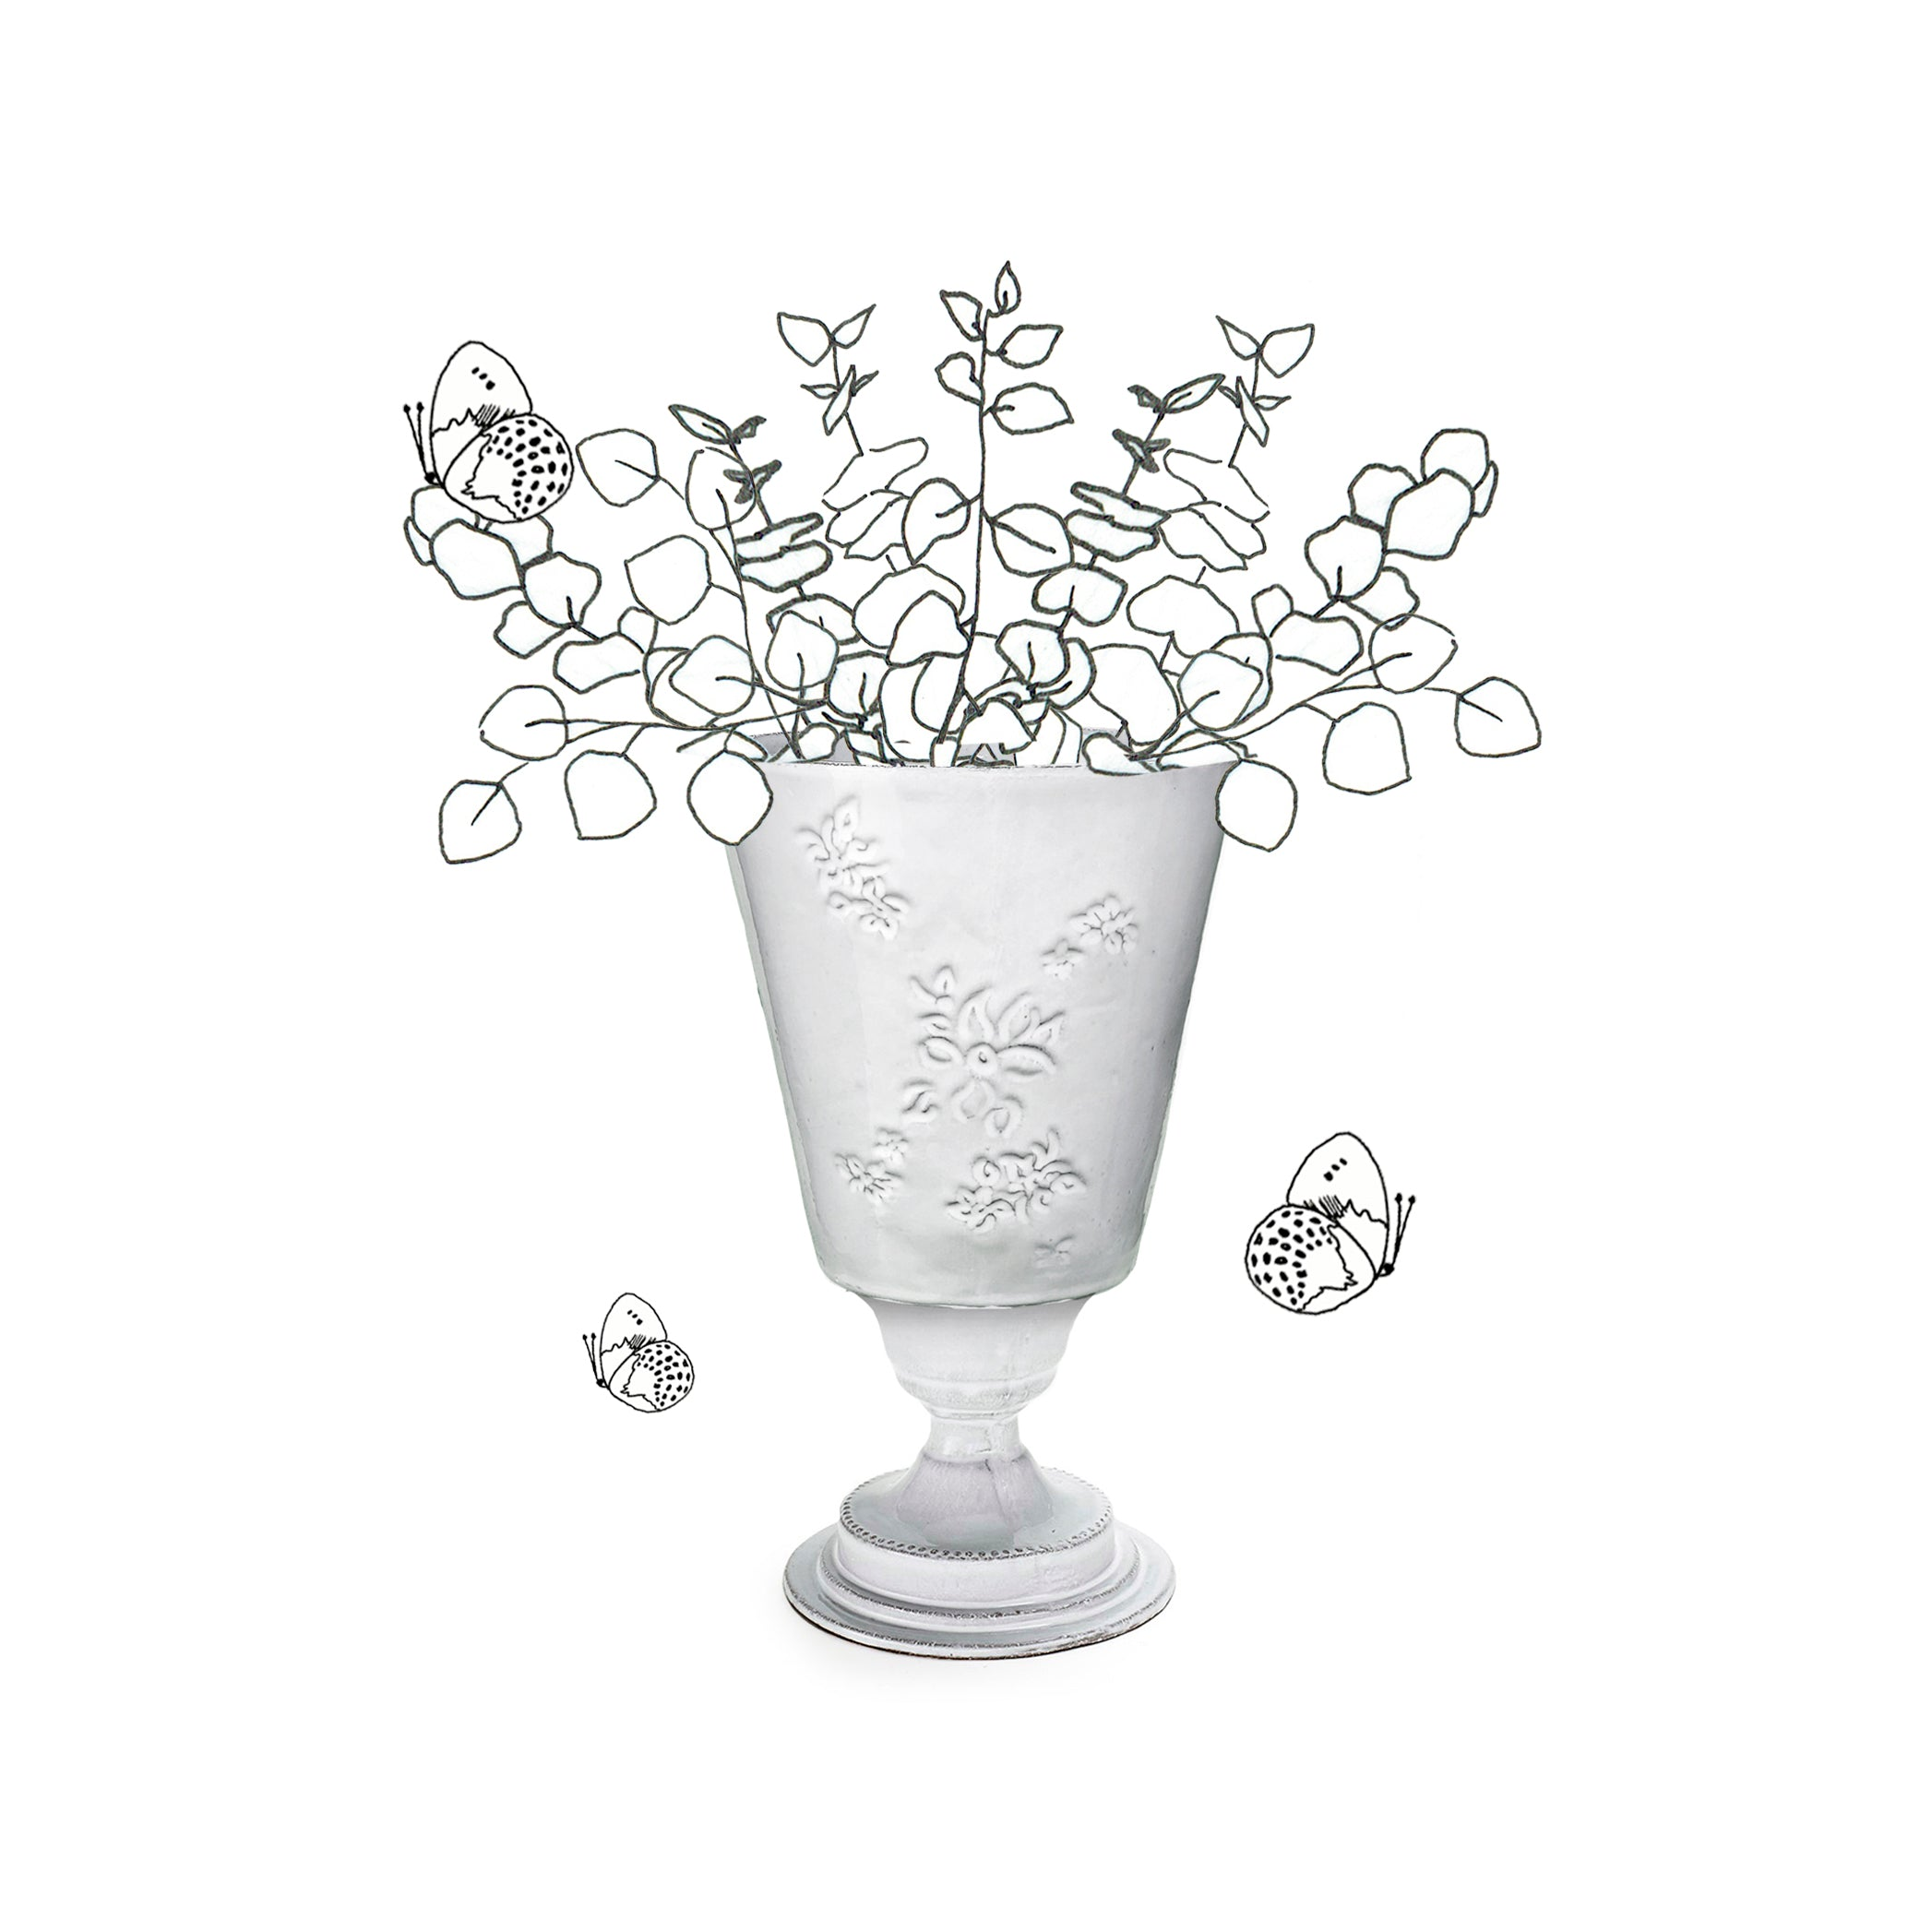 Astier de Villatte x Summerill & Bishop Petit Vase with Falling Flower